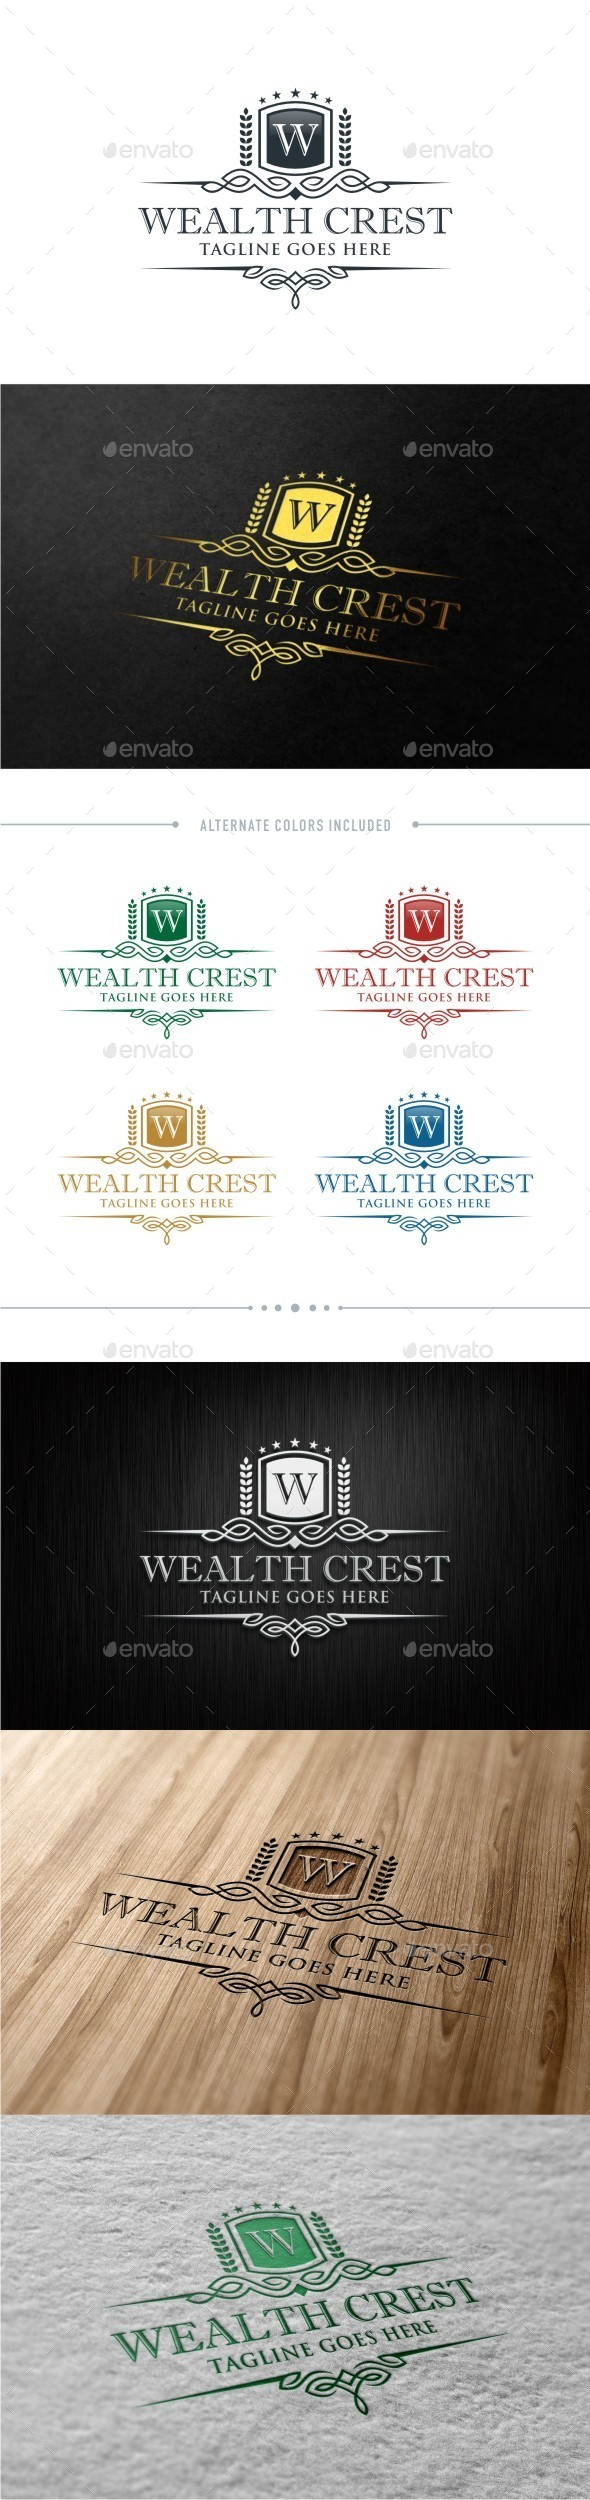 GraphicRiver Wealth Crest 11209982